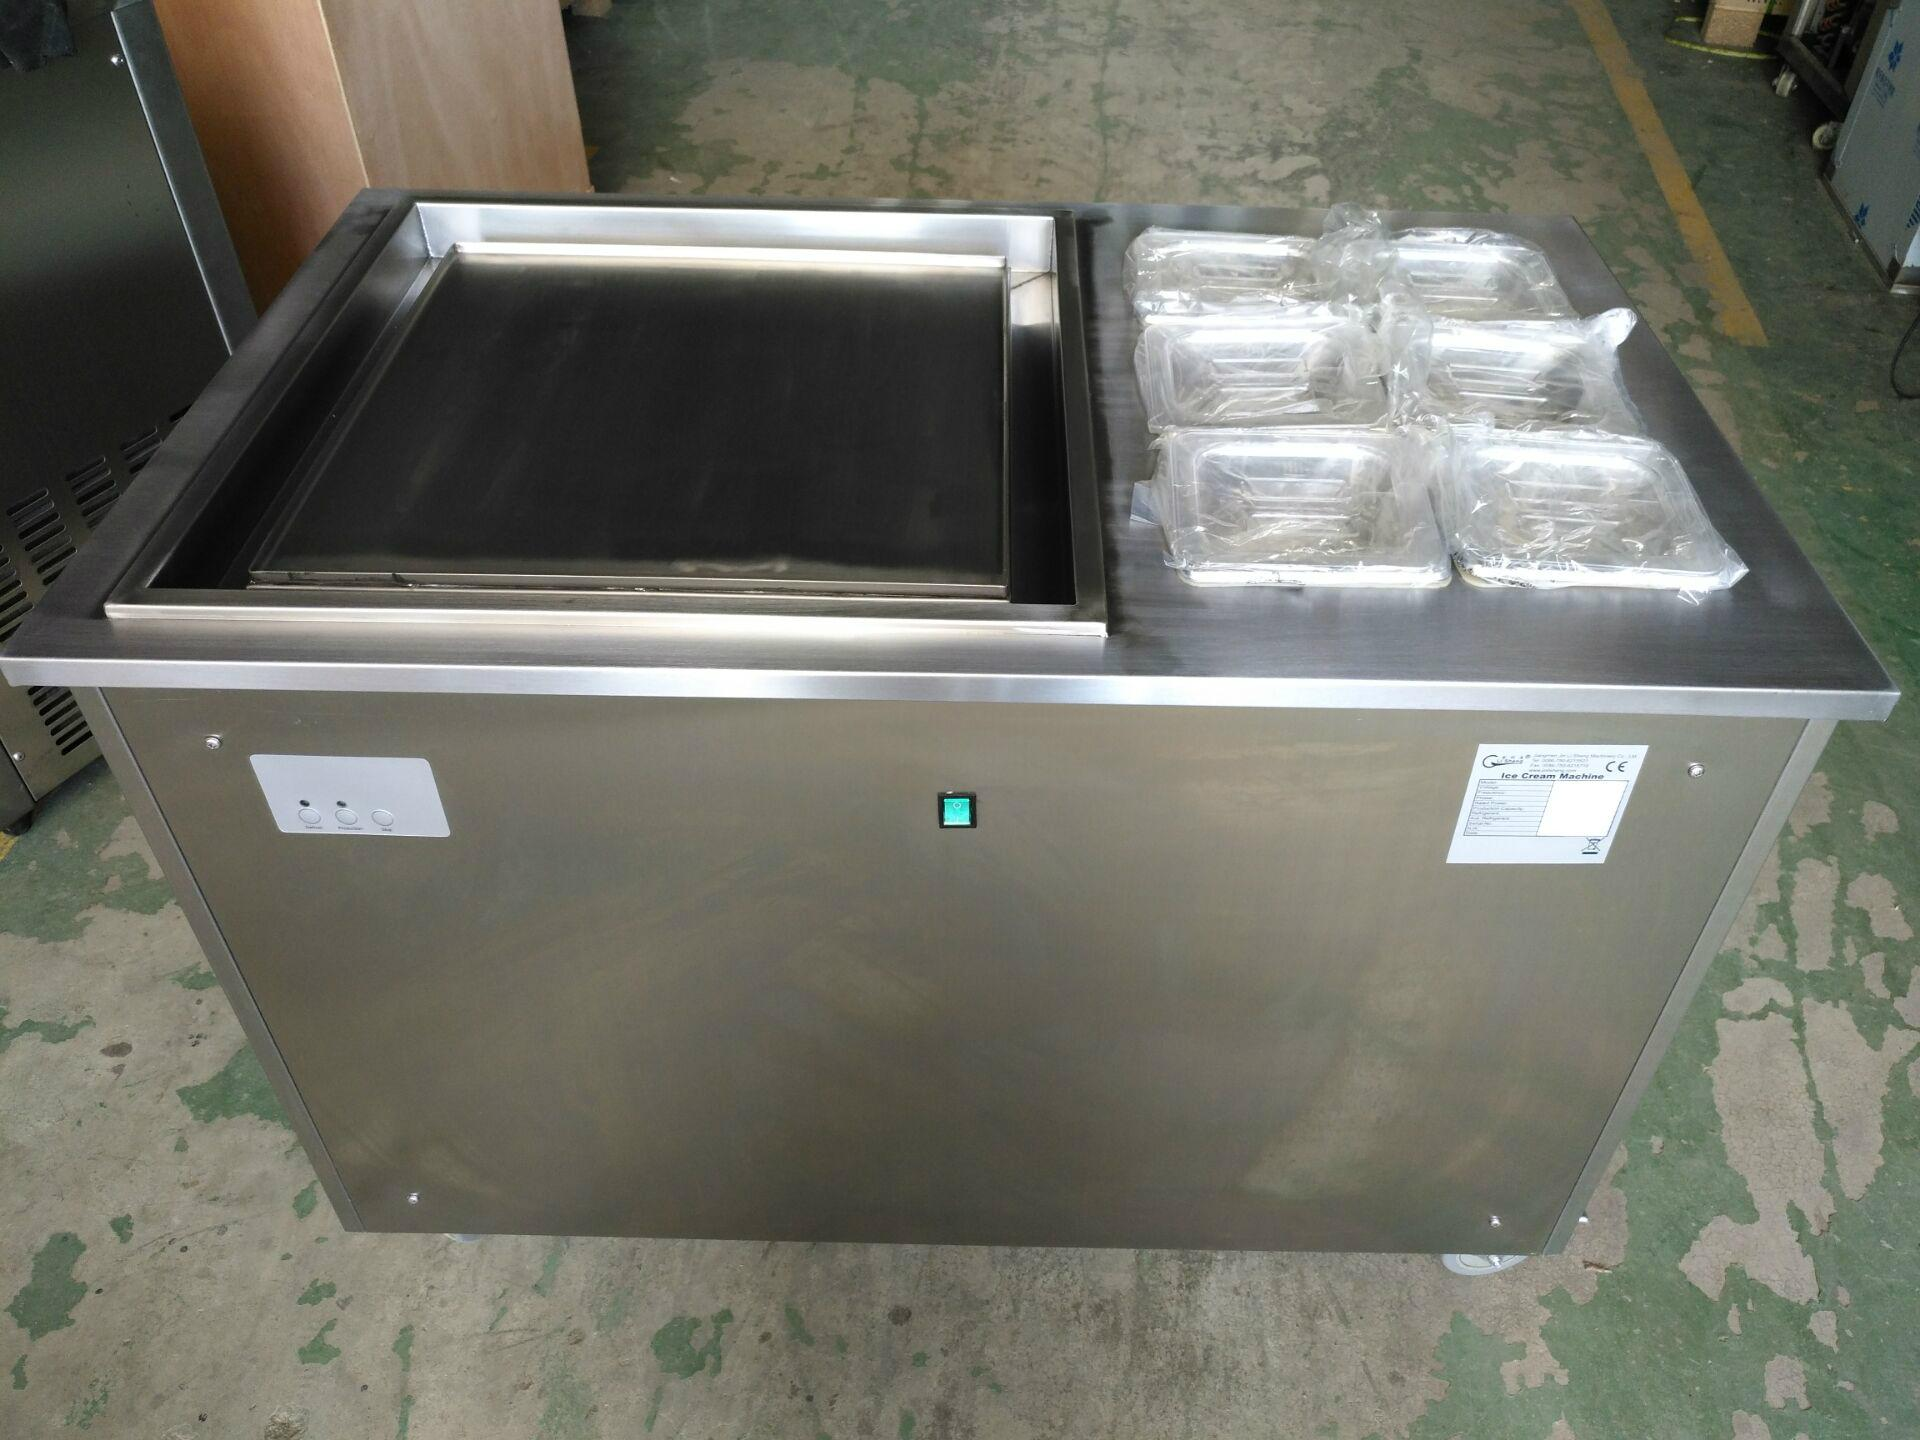 China Factory Supply Thailand Style Roll Fry Ice Cream Machine